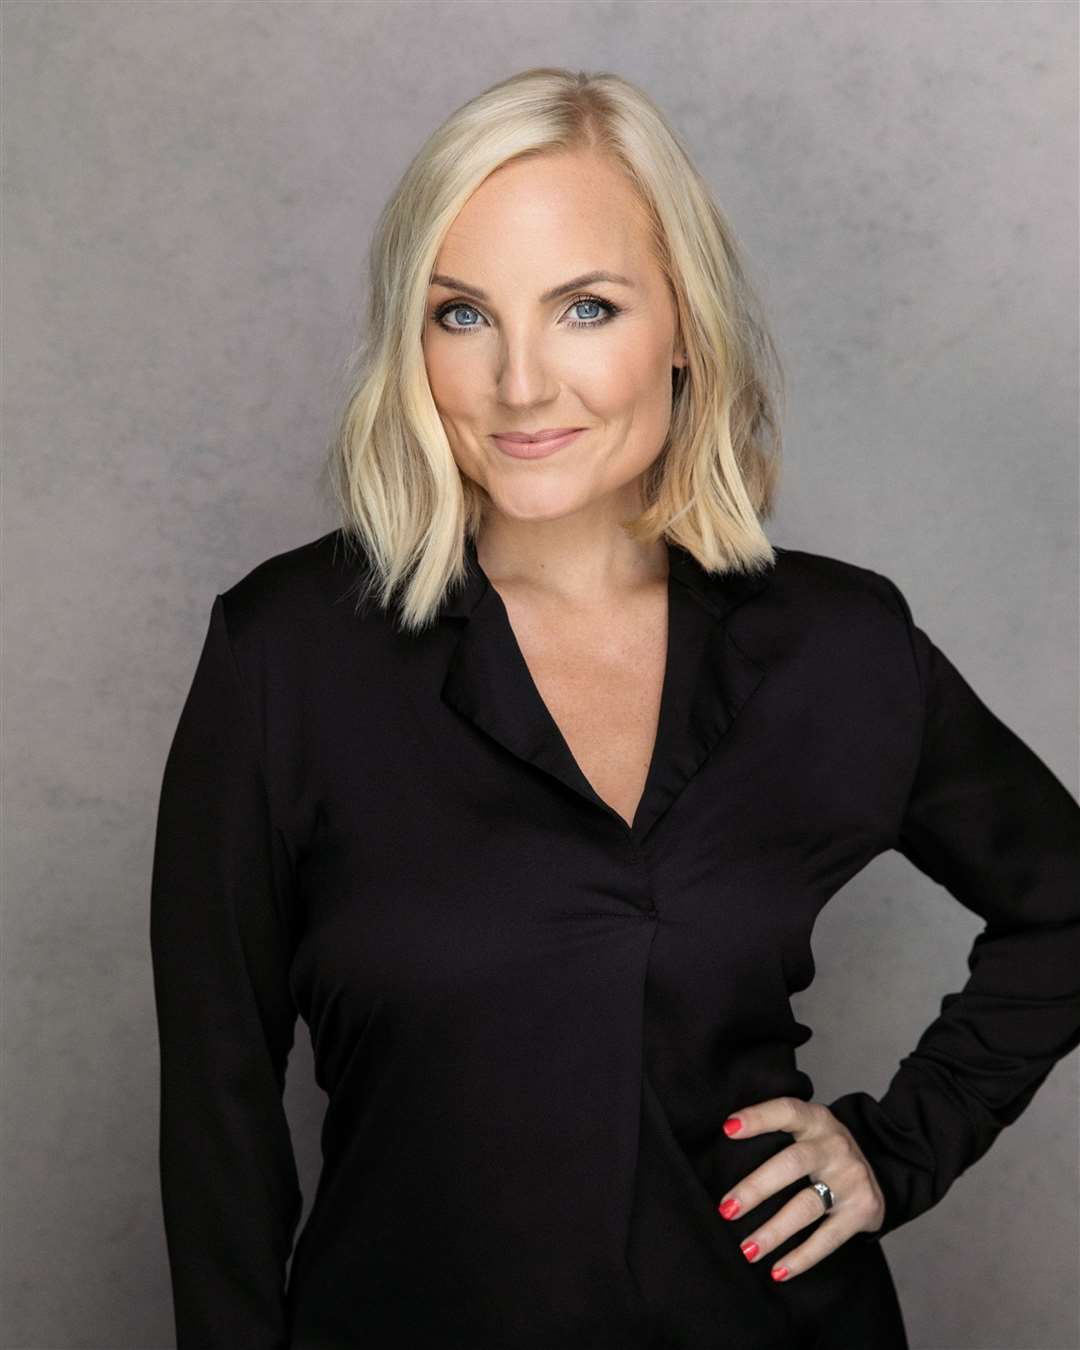 Kerry-Ellis Townsend. Picture: Kerry-Ellis Townsend.